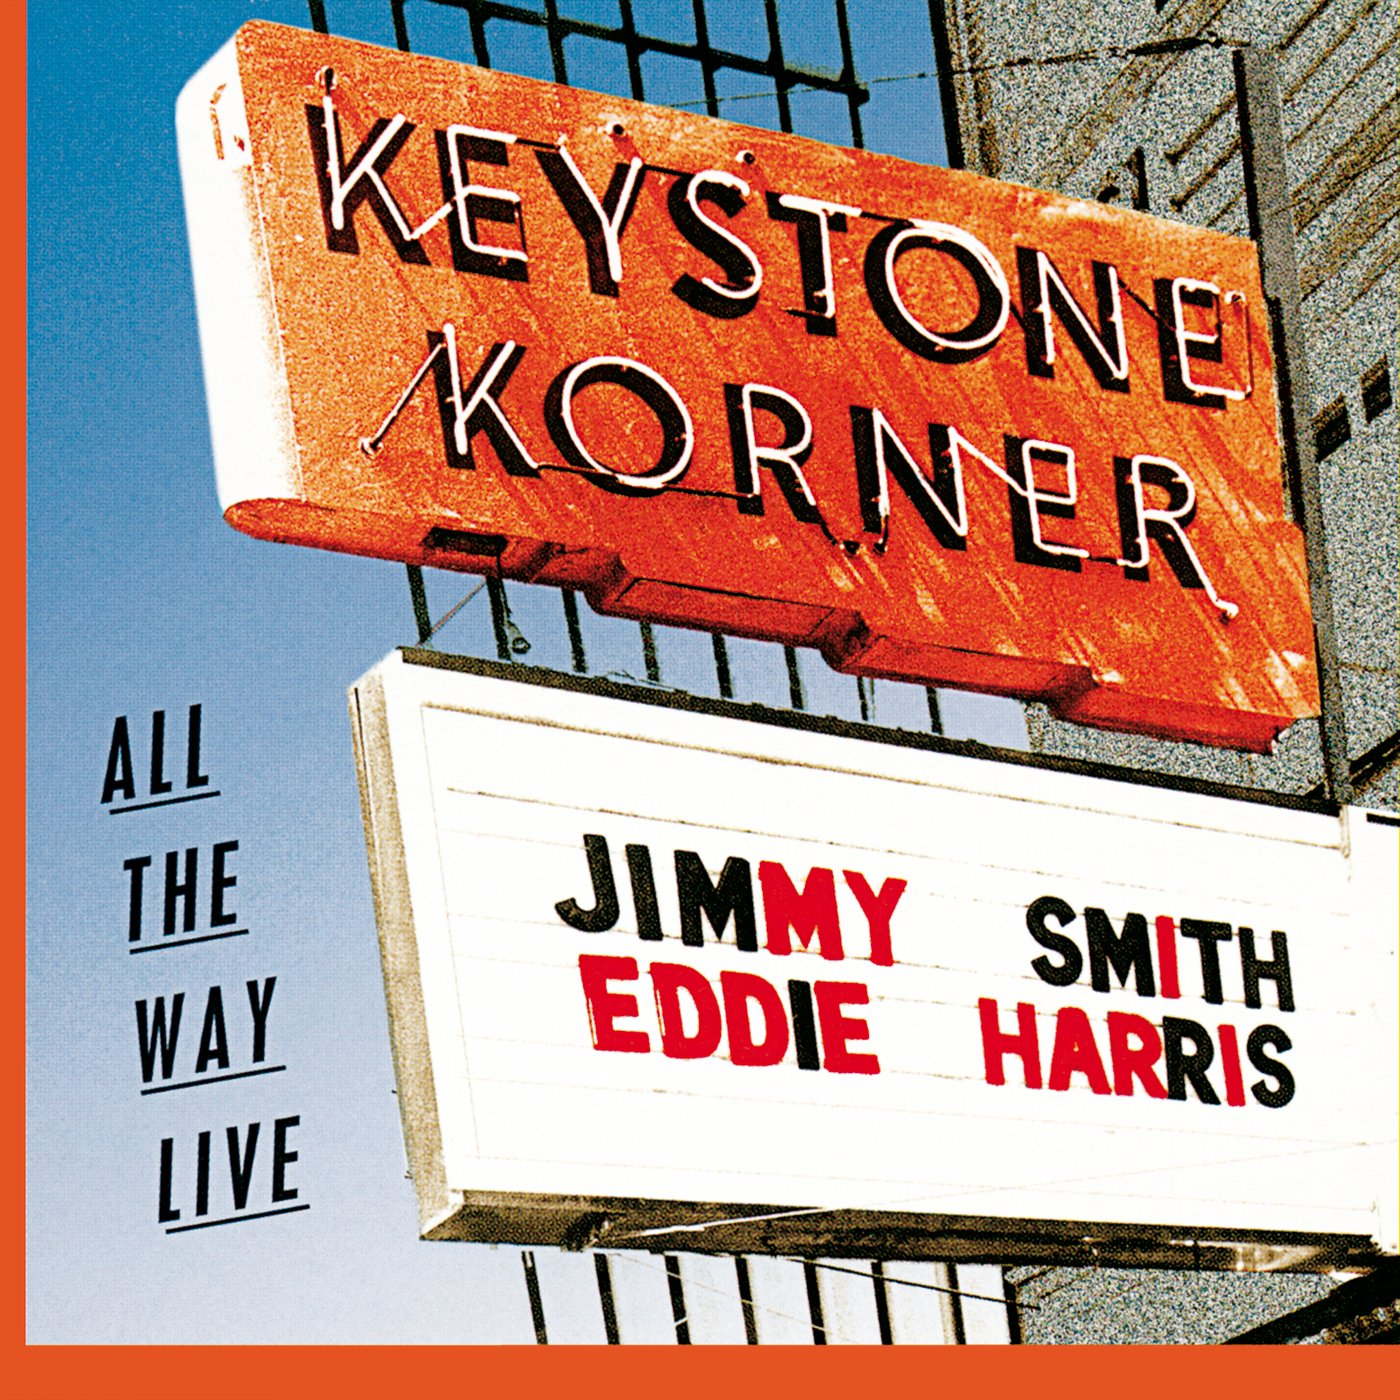 Jimmy Smith And Eddie Harris – All The Way Live (1996) [FLAC]